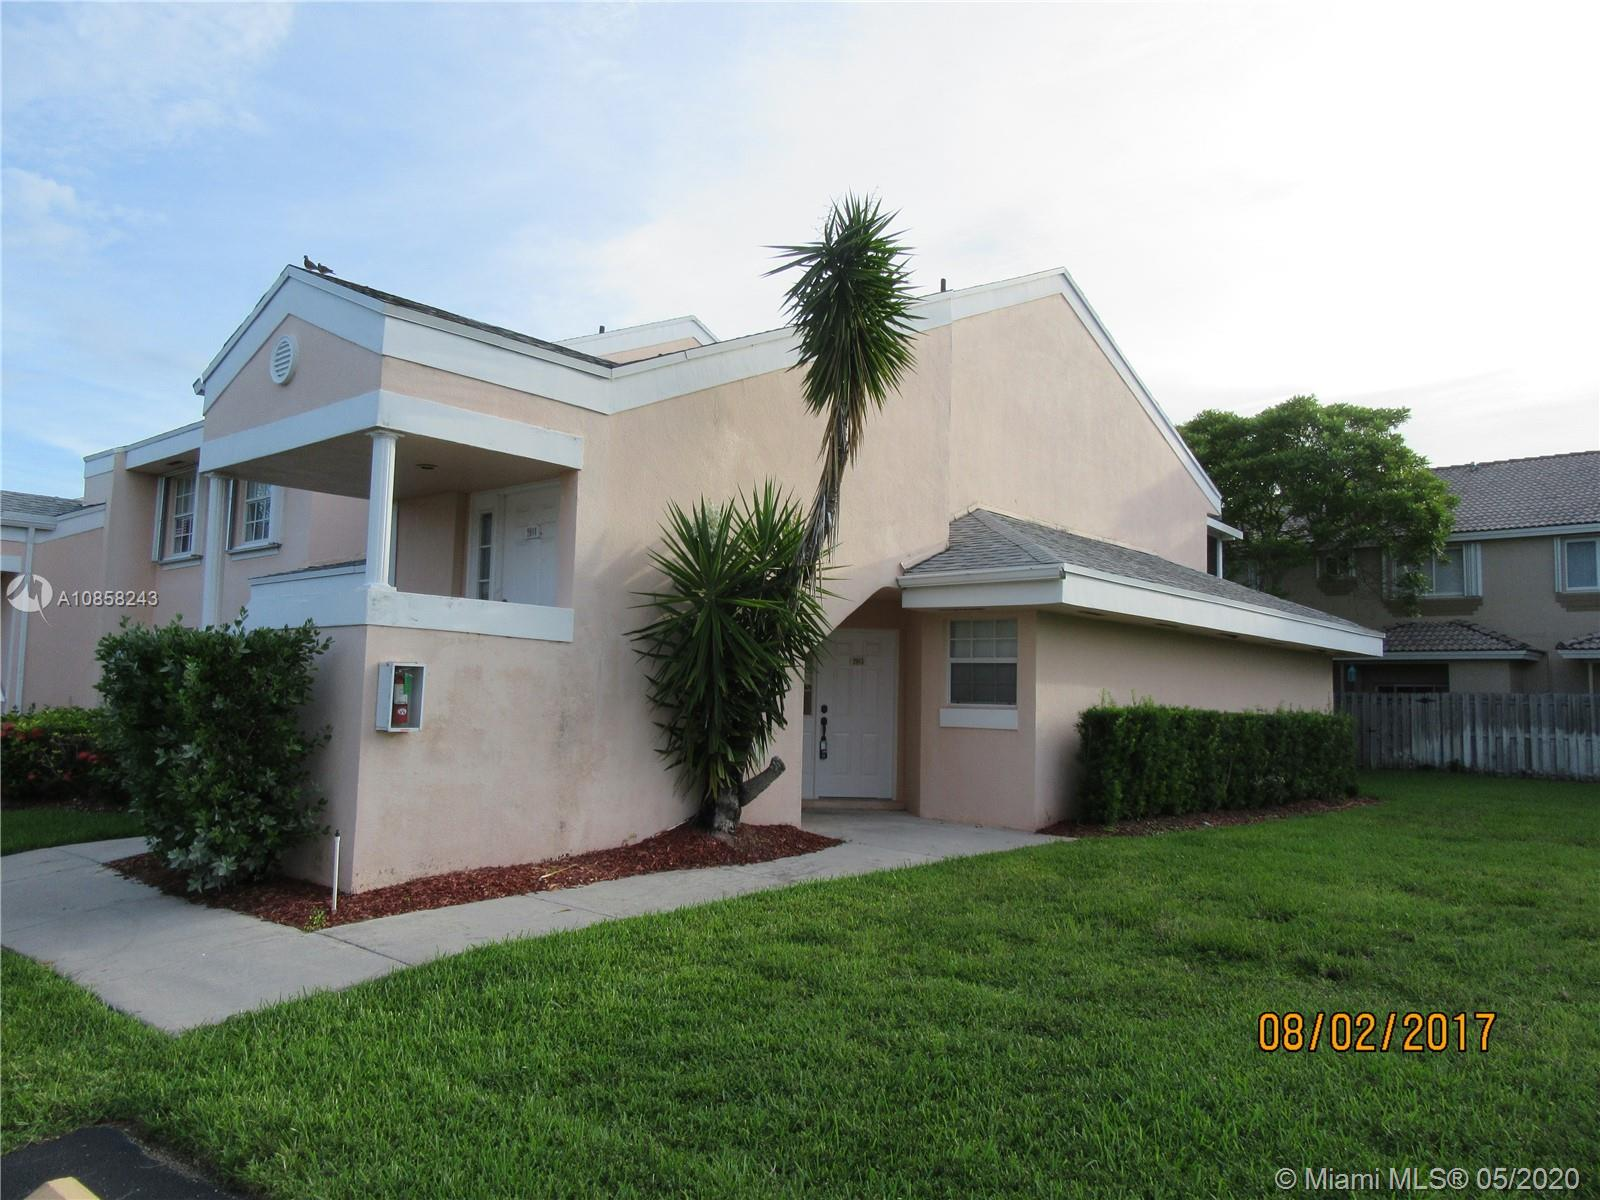 Keys Gate Condo No Eight Real Estate Listings Main Image